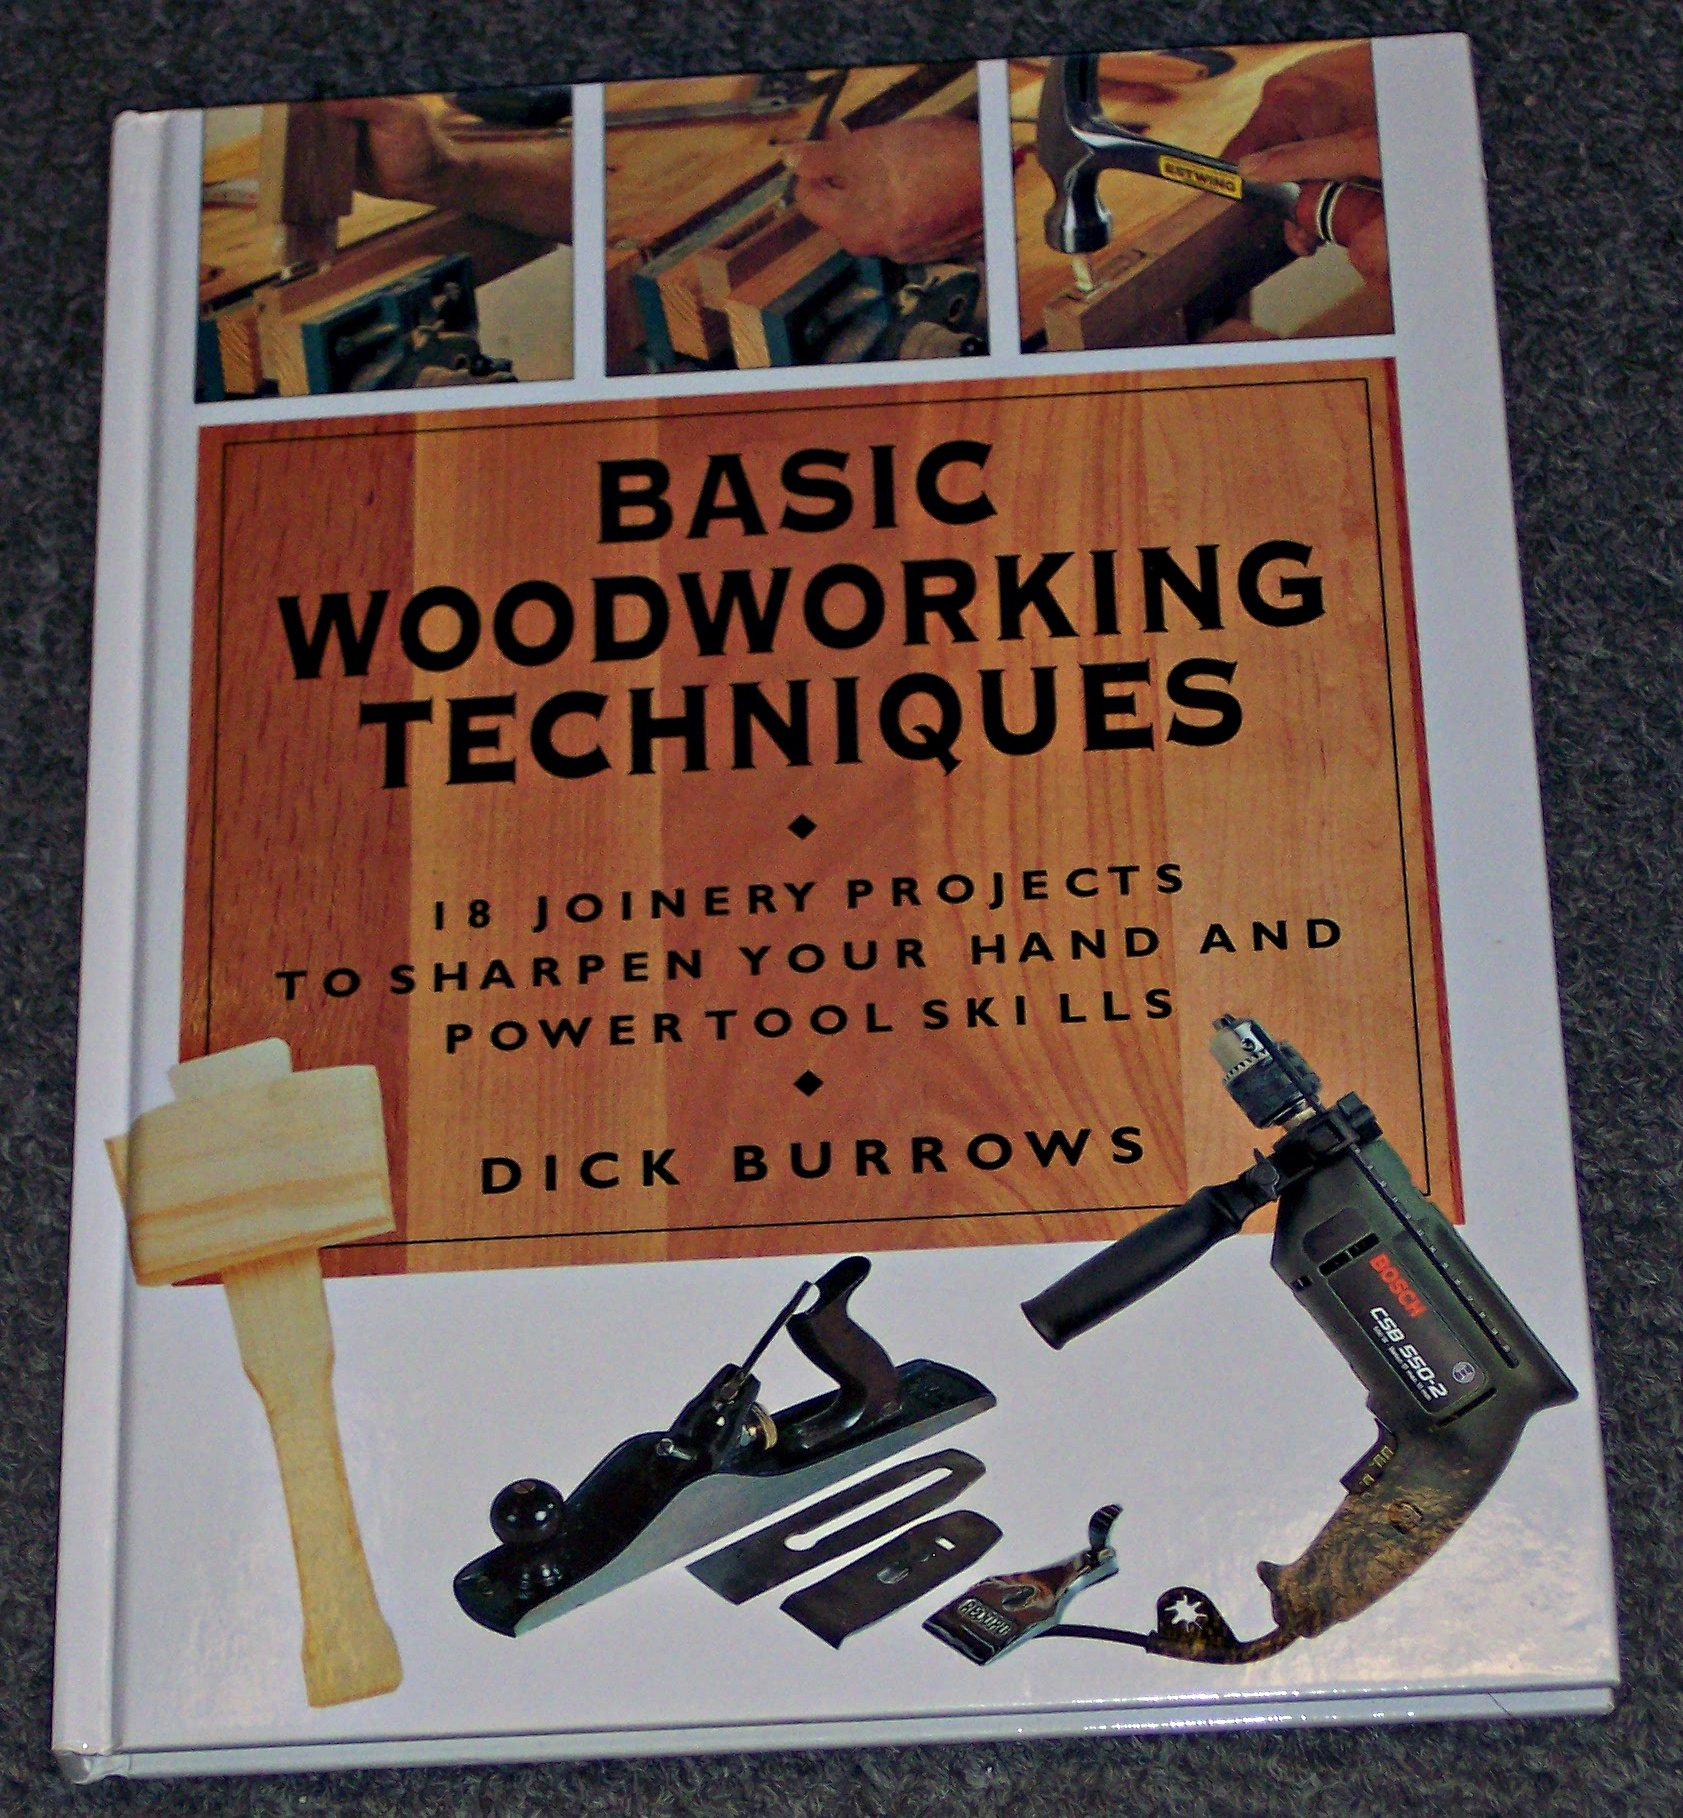 Basic Woodworking Techniques: 18 Joinery Projects to Sharpen Your Hand and Power Tool Skills